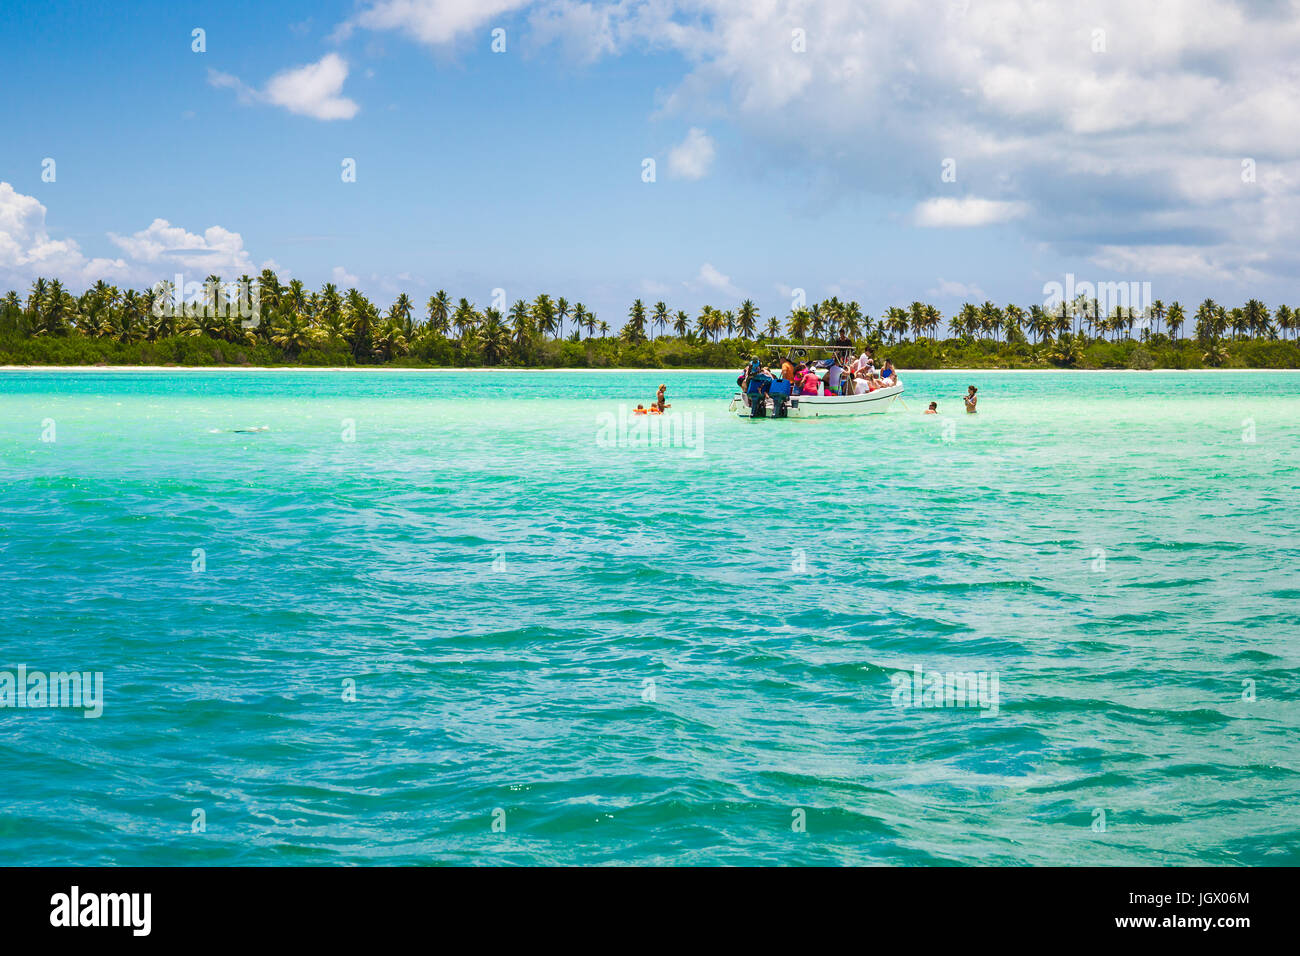 Boat with tourists in a natural sea pool. Dominican Republic. - Stock Image